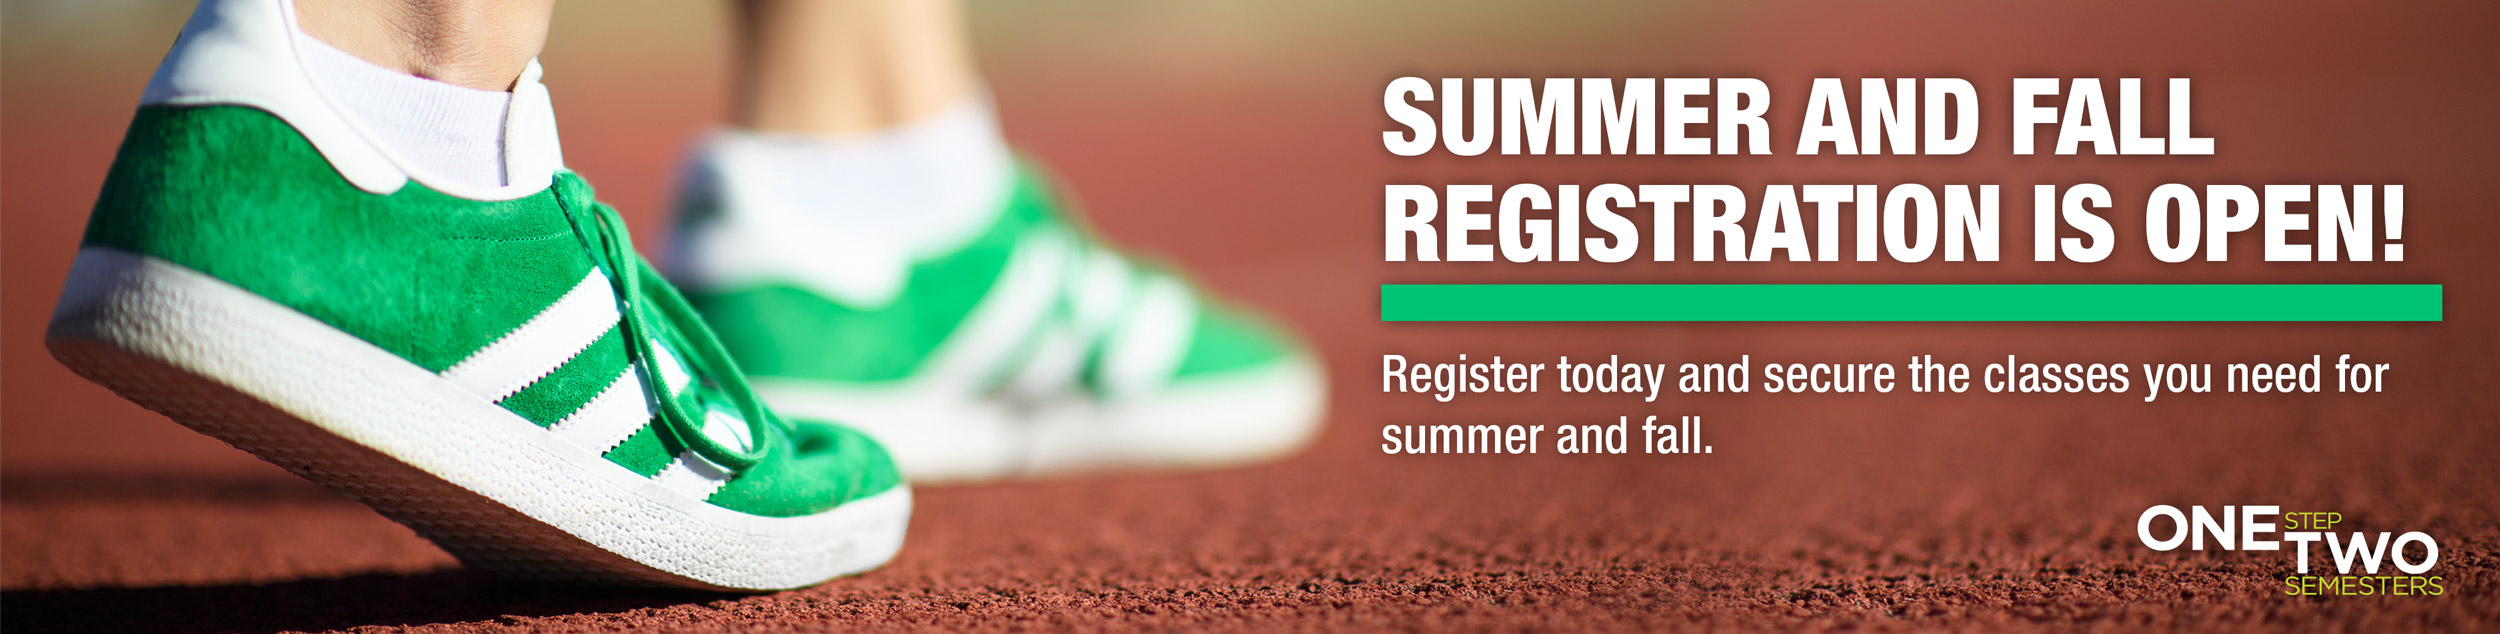 Register now for summer and fall classes.